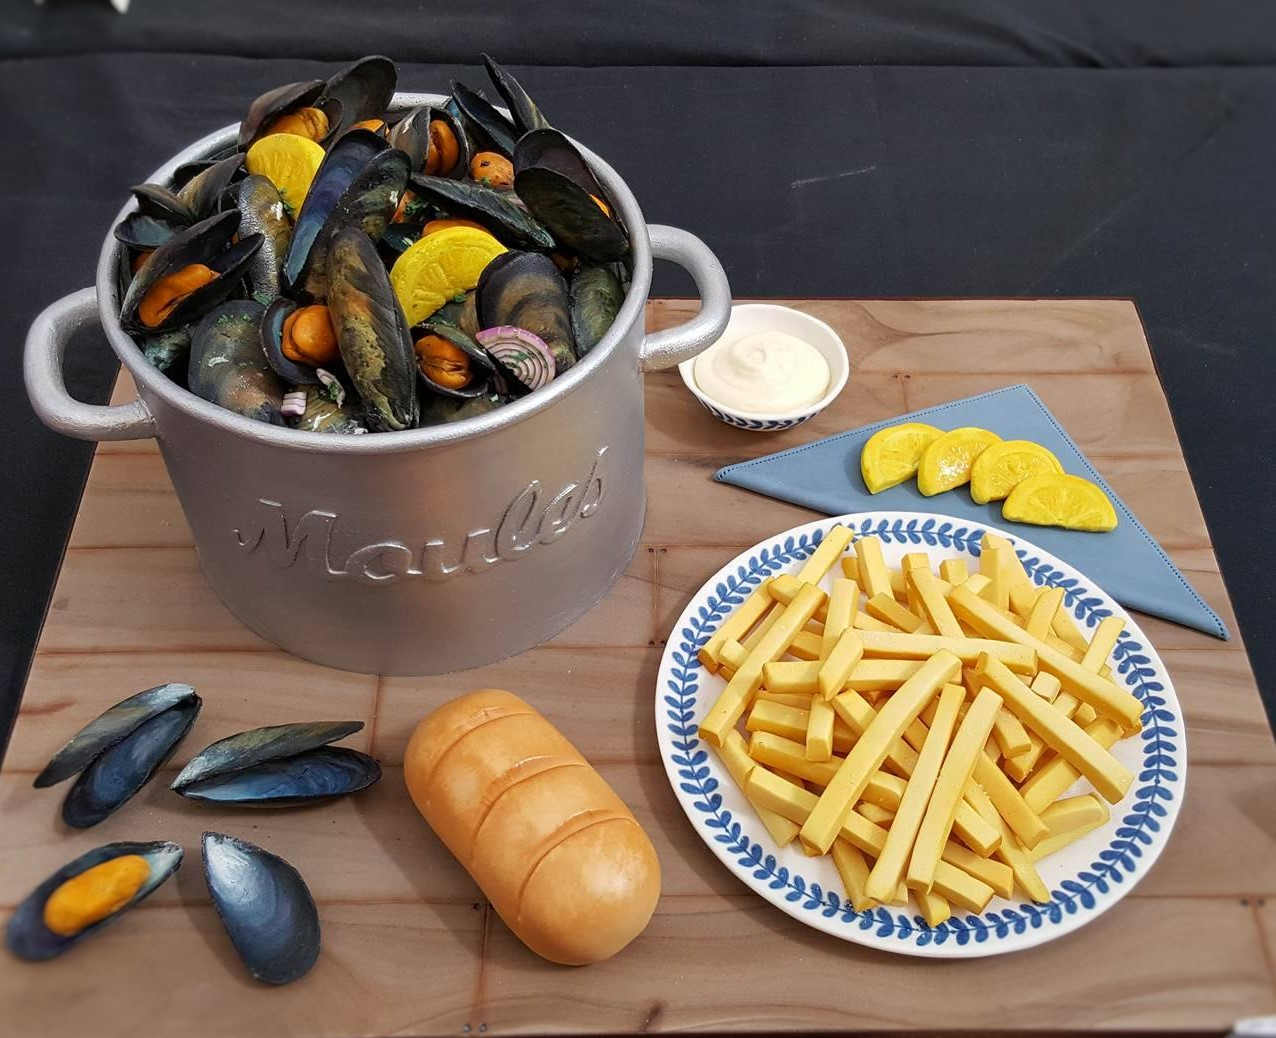 Wedding Cake Inspiration - Moules Frites